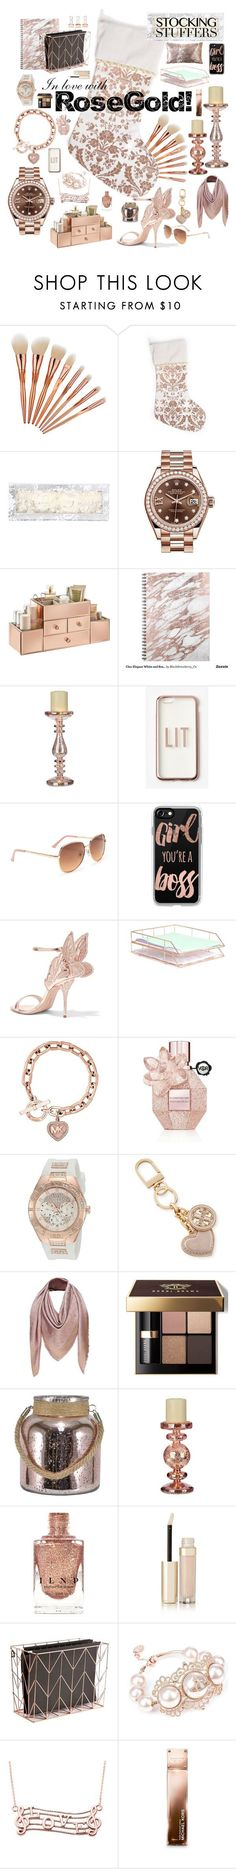 """In Love With Rose Gold!"" by ladydivaboss ❤ liked on Polyvore featuring interior, interiors, interior design, home, home decor, interior decorating, Hanky Panky, Rolex, Missguided and Aéropostale"